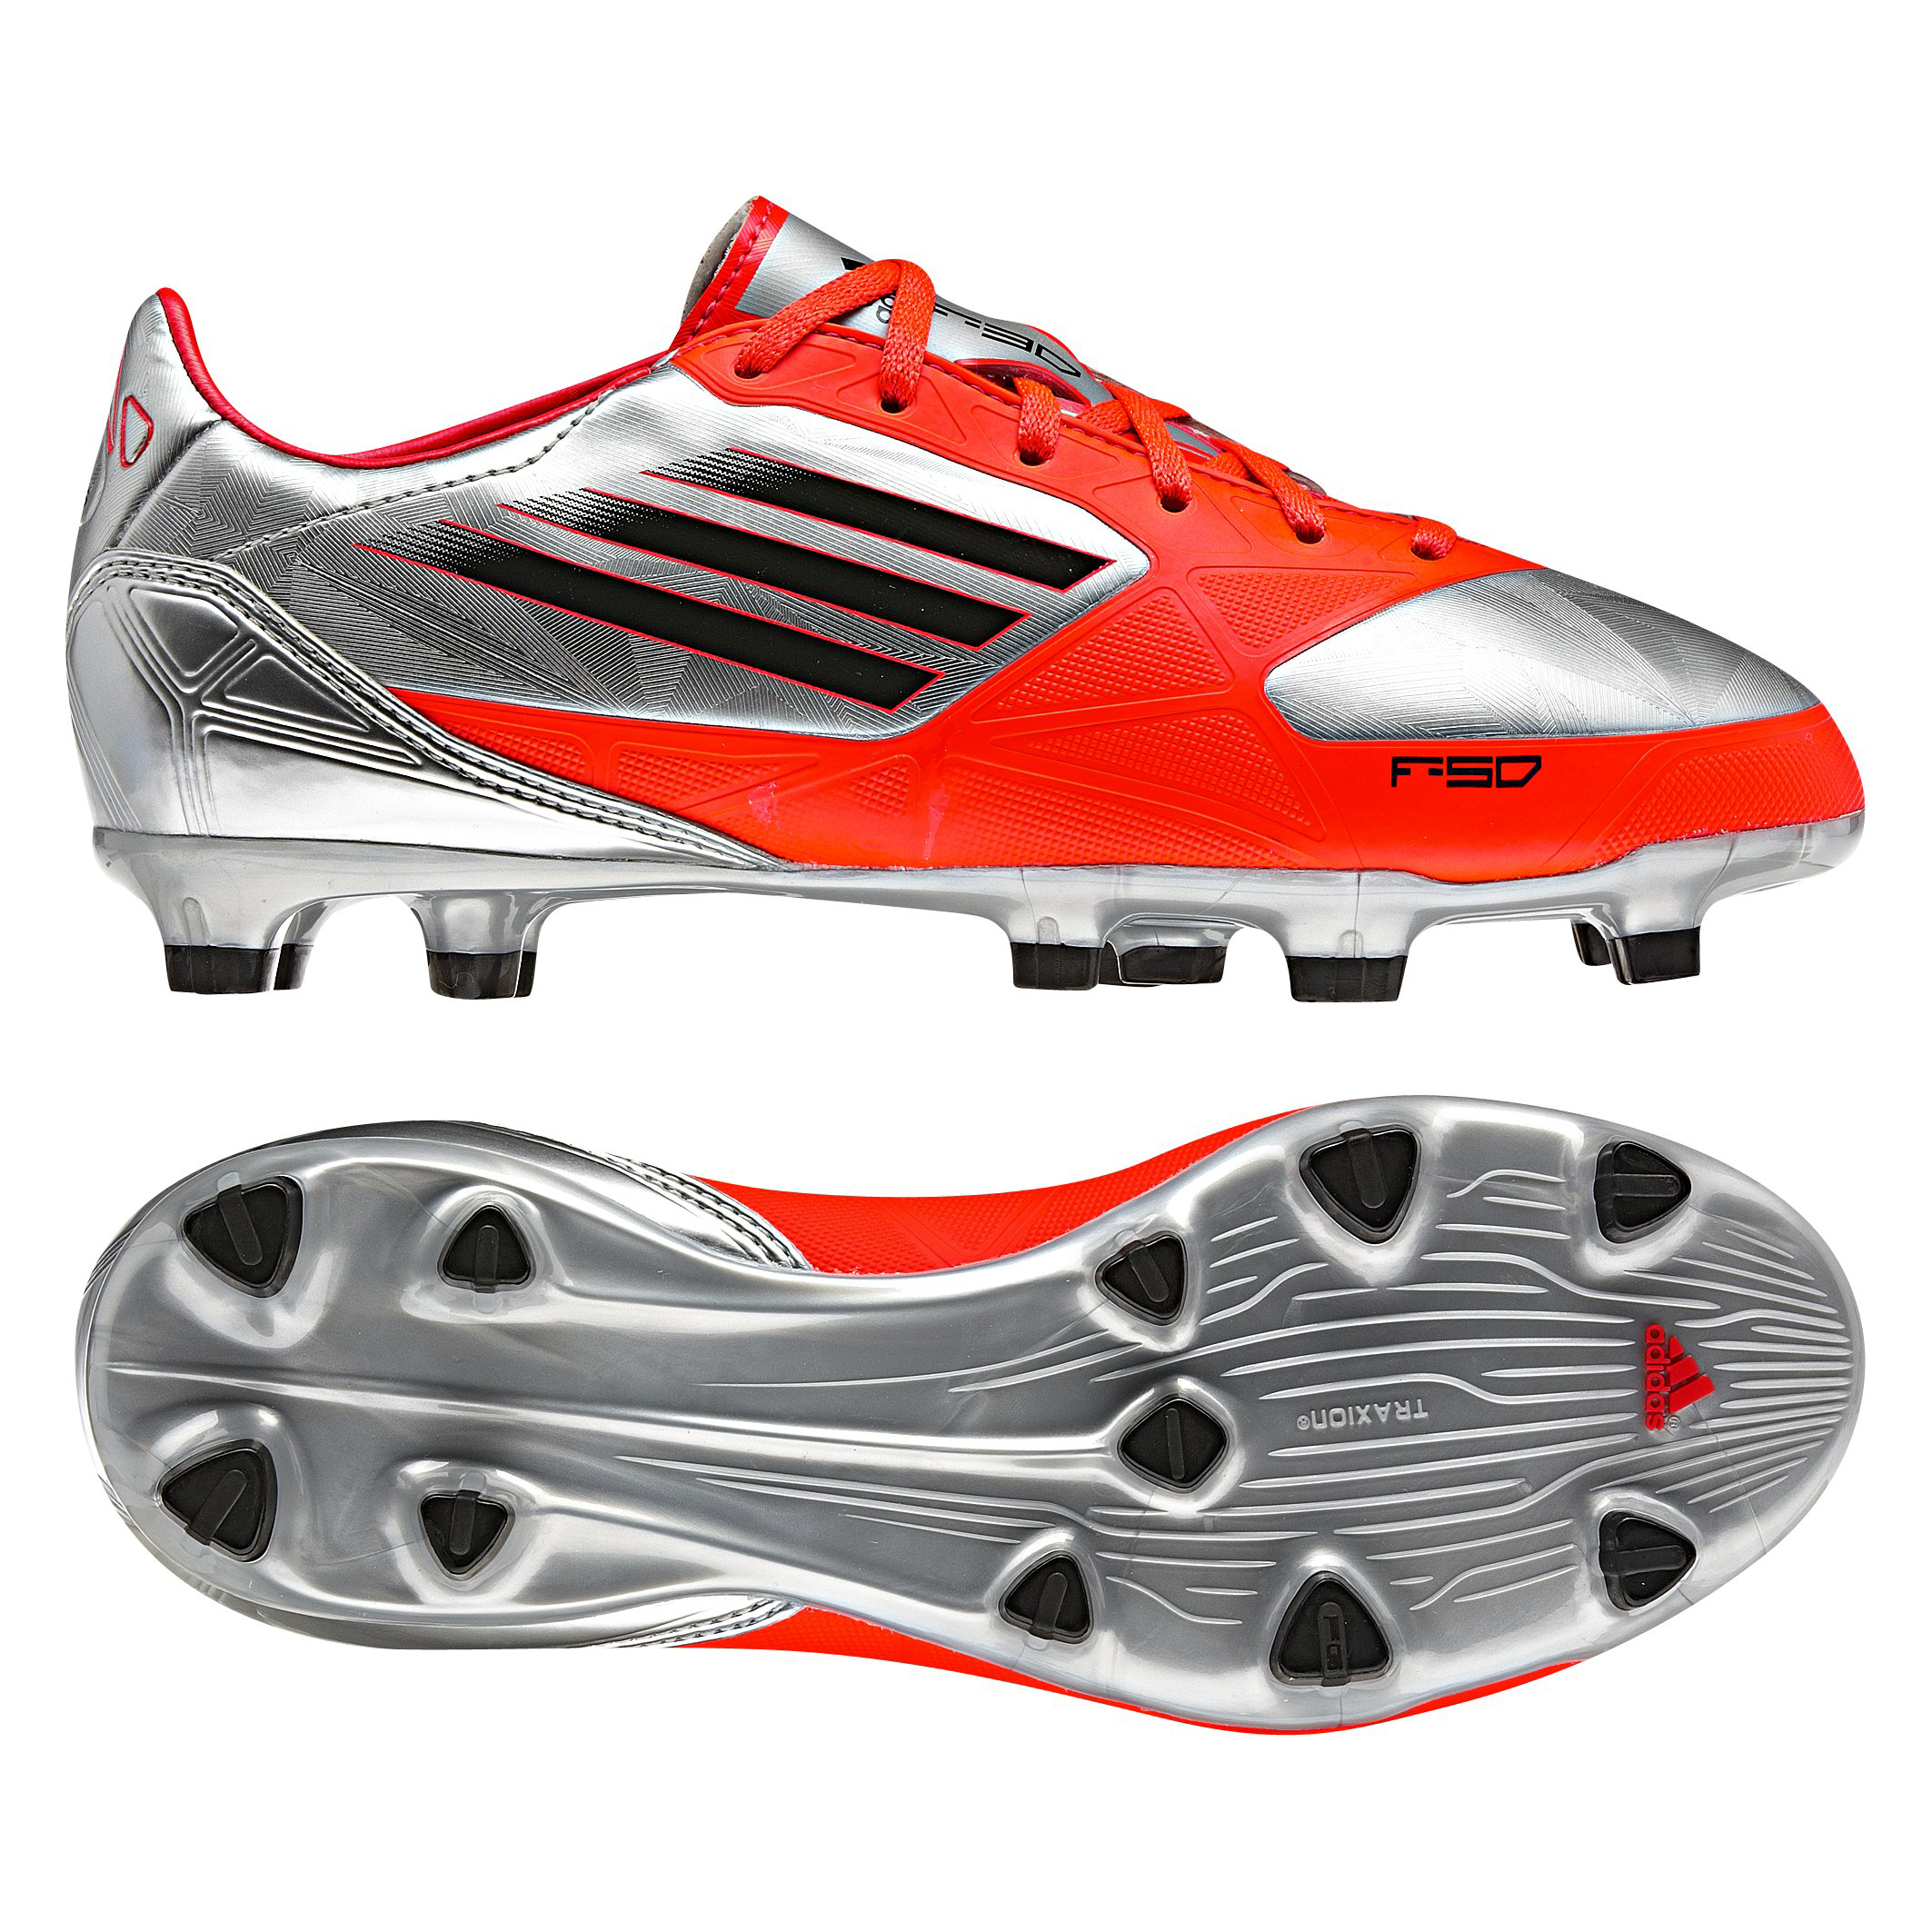 Adidas F30 TRX Firm Ground Football Boots - Metallic Silver/Black/Infrared - Kids